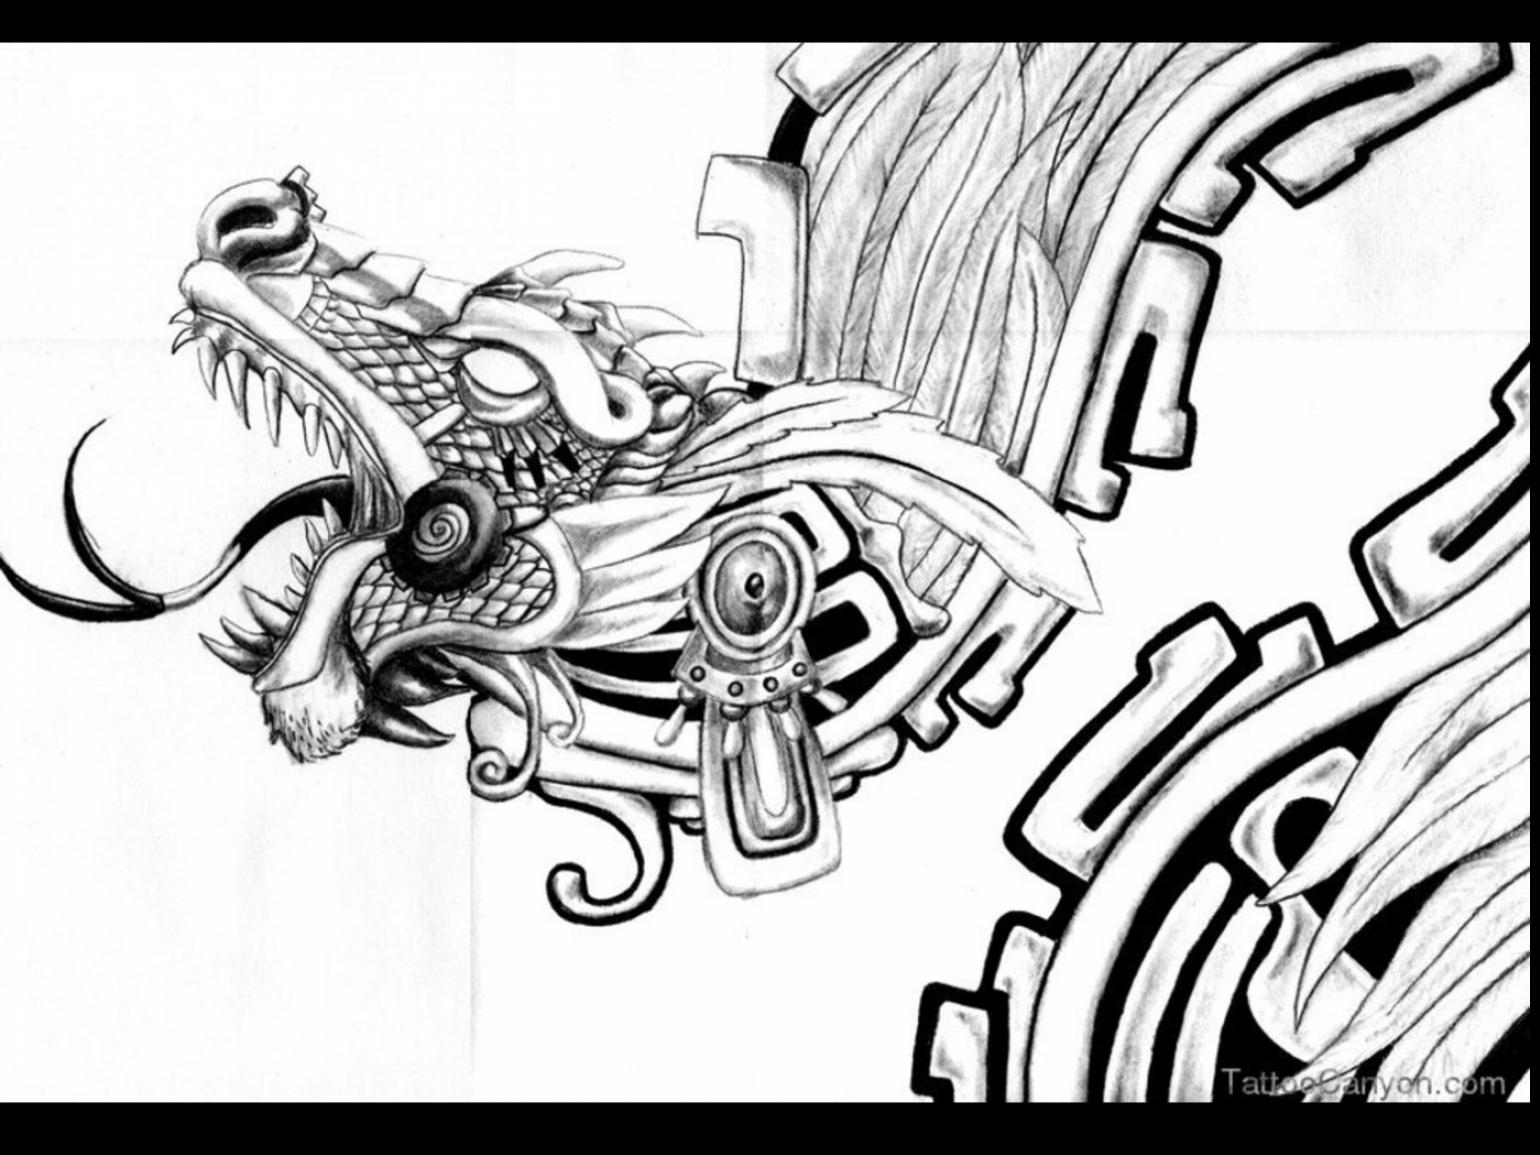 Lowrider Arte Drawing at GetDrawings.com | Free for ...